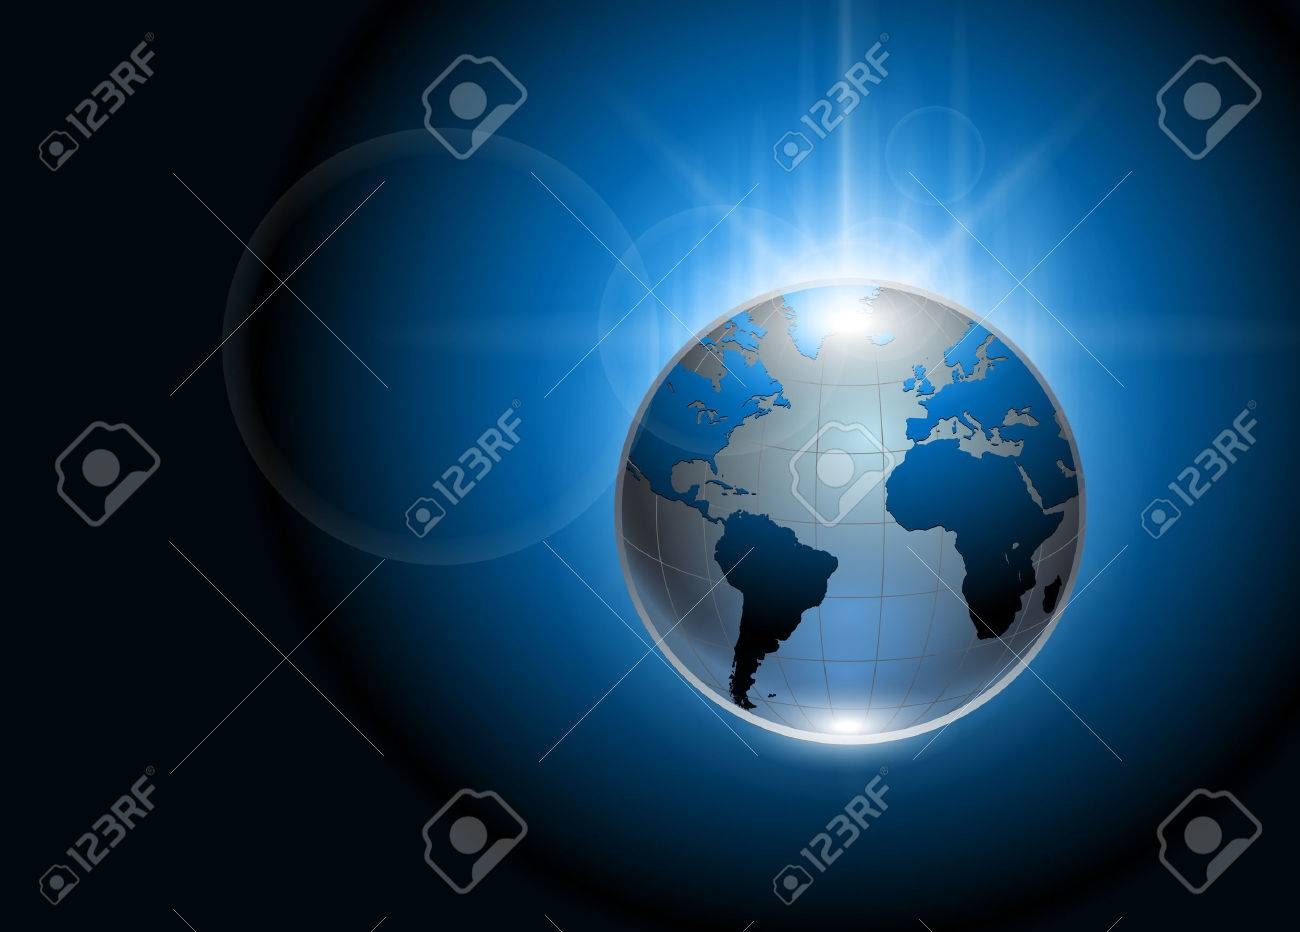 Abstract background blue glowing earth globe Stock Vector - 7910507